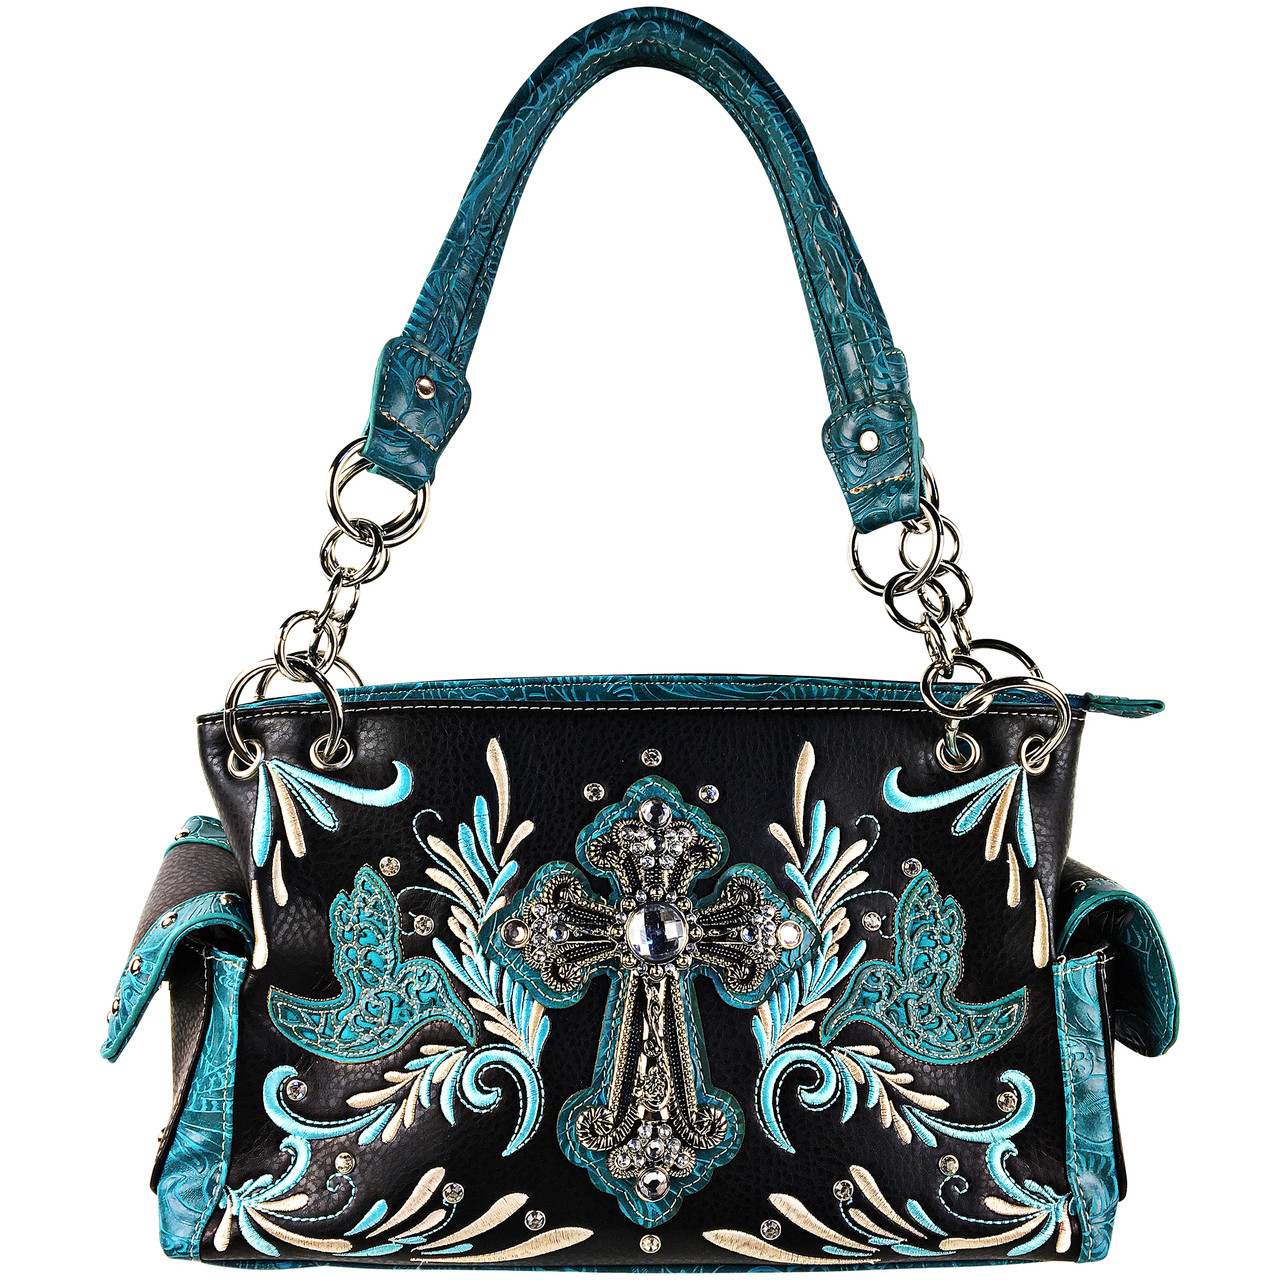 TURQUOISE RHINESTONE STUDDED CROSS LOOK SHOULDER HANDBAG